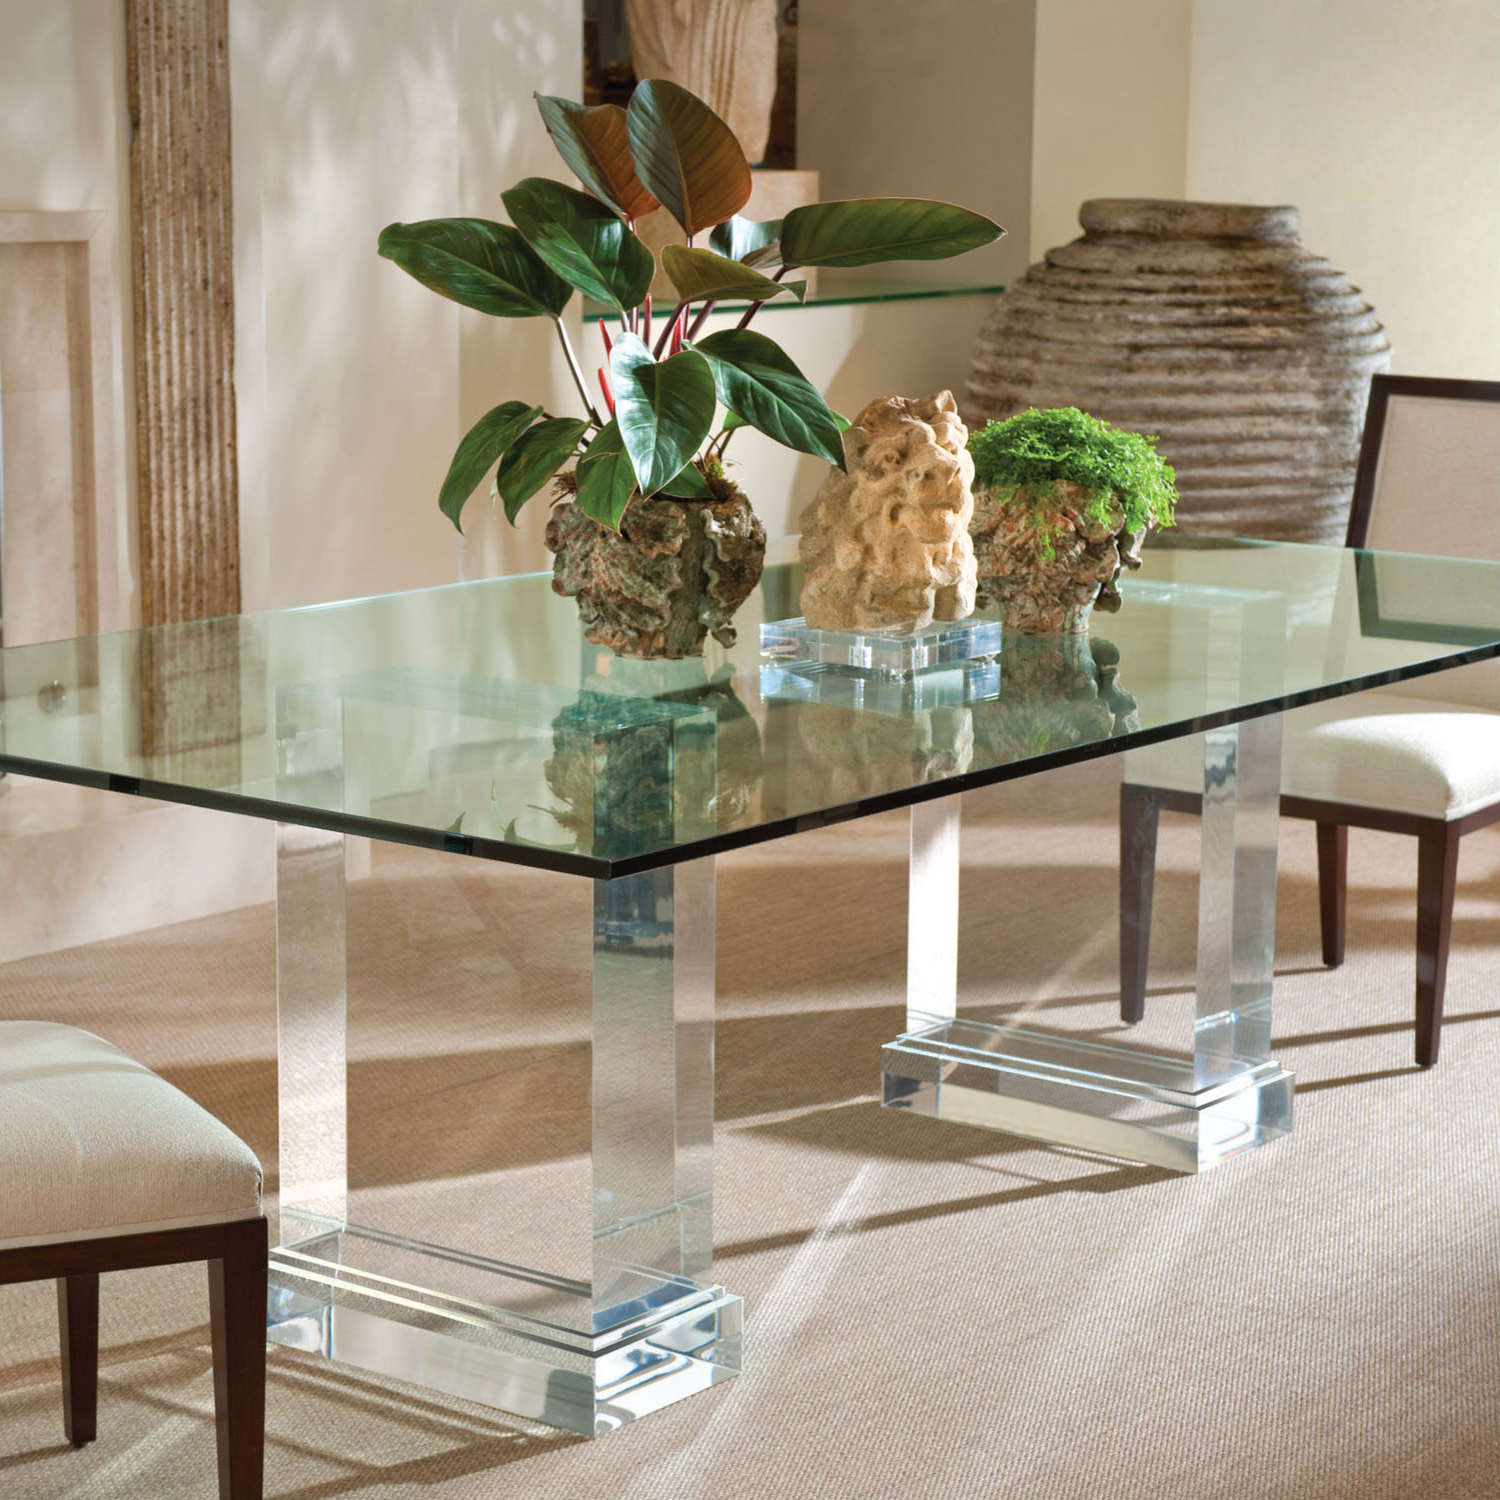 Finest Rectangle Glass Top For Dining Table On With Hd Throughout Latest Rectangular Glasstop Dining Tables (View 12 of 30)